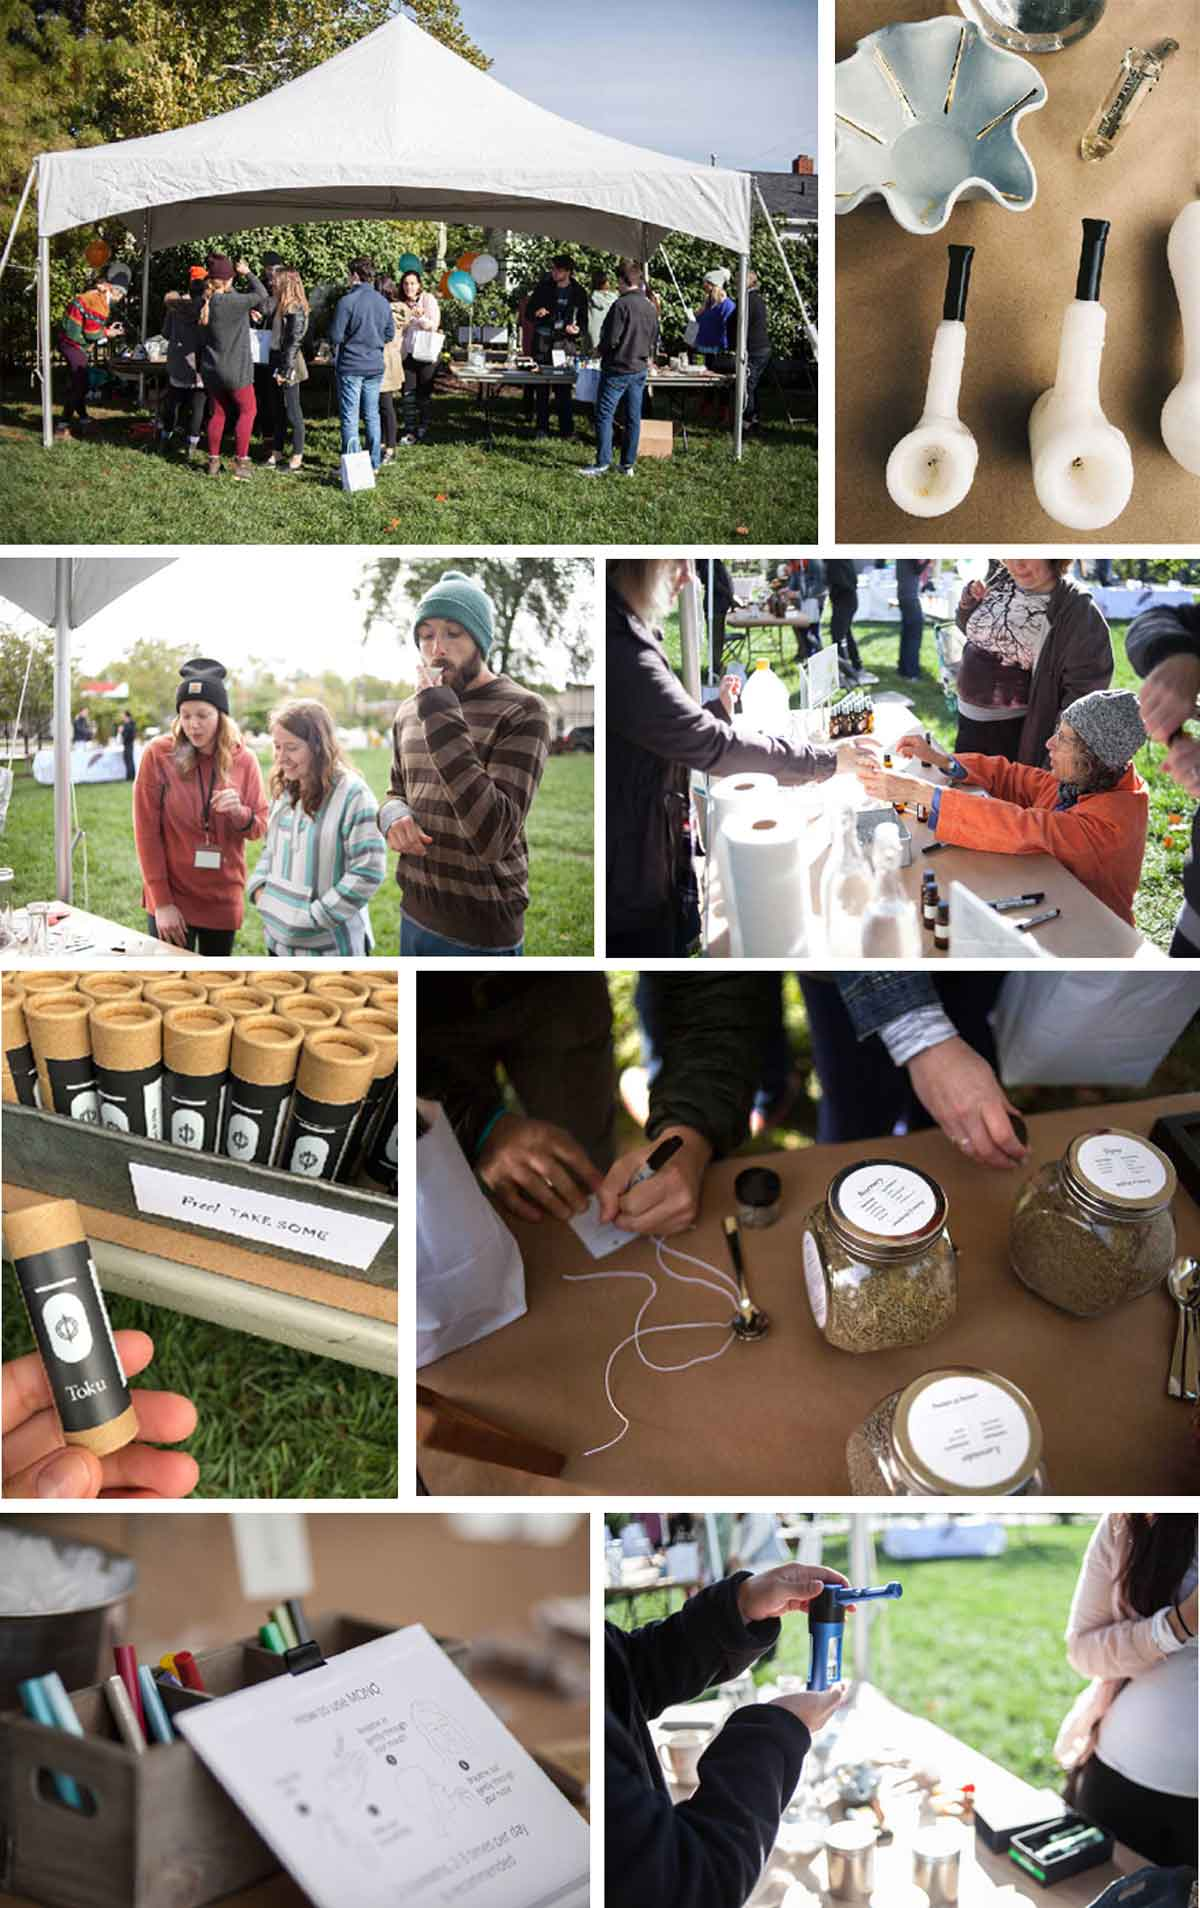 Inhalation station to try different herbal smoking blends in bongs, vaporizers, and more